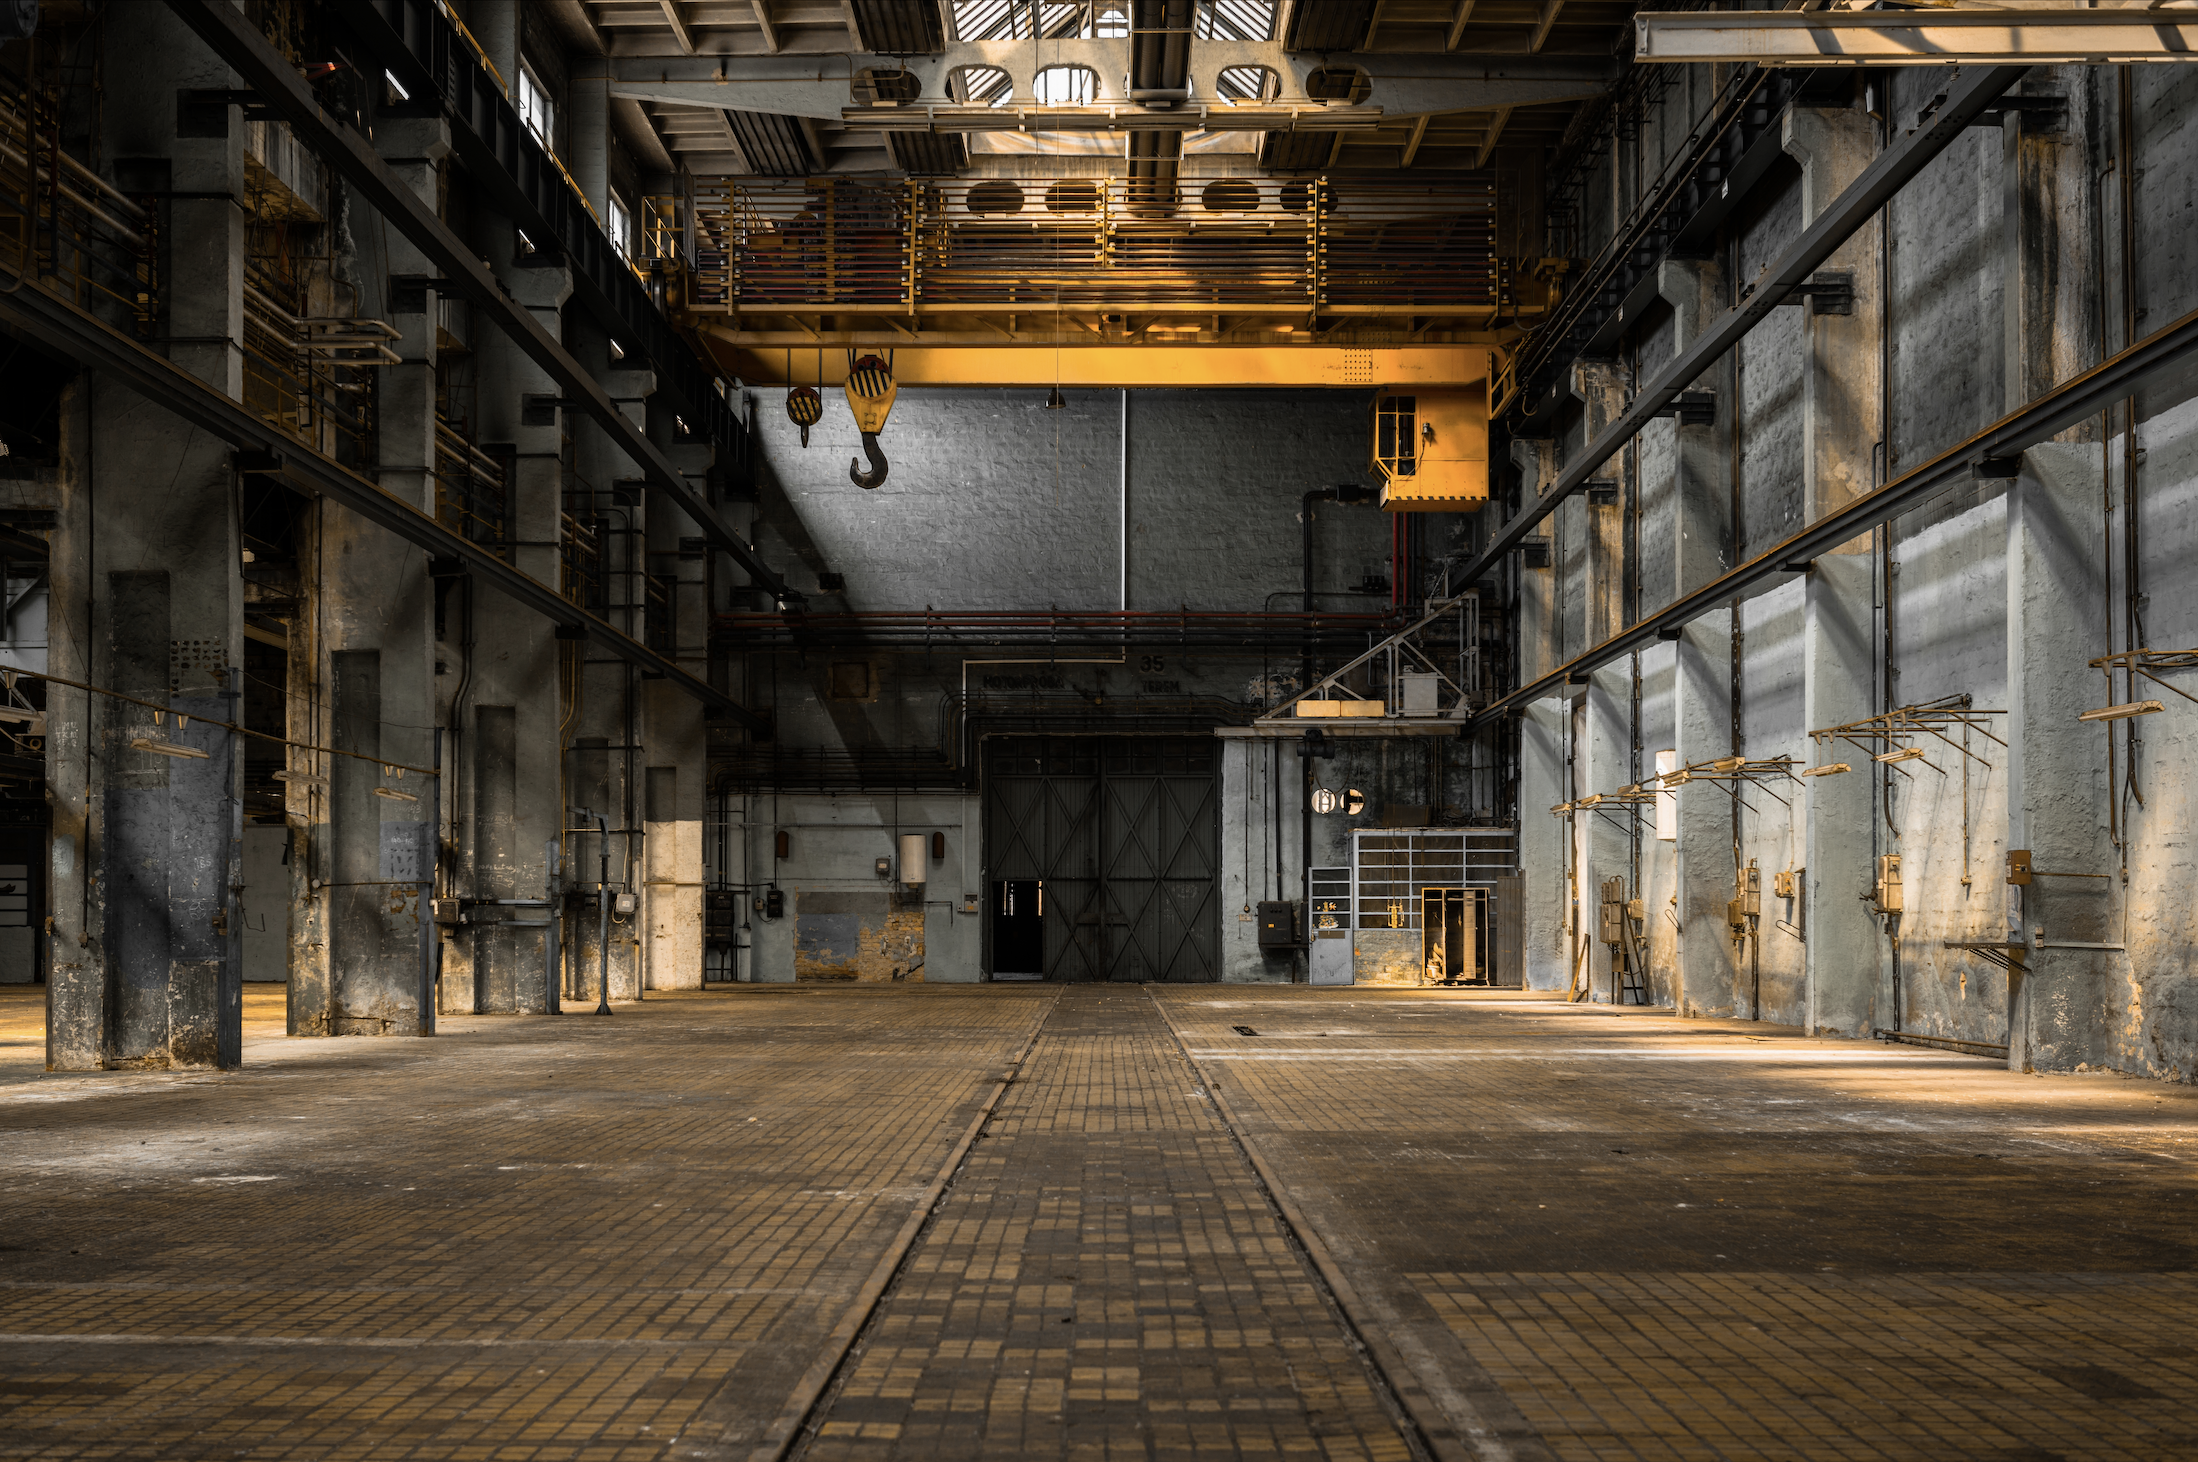 A inside view photo of a very cool old heavy industrial warehouse with crane service.